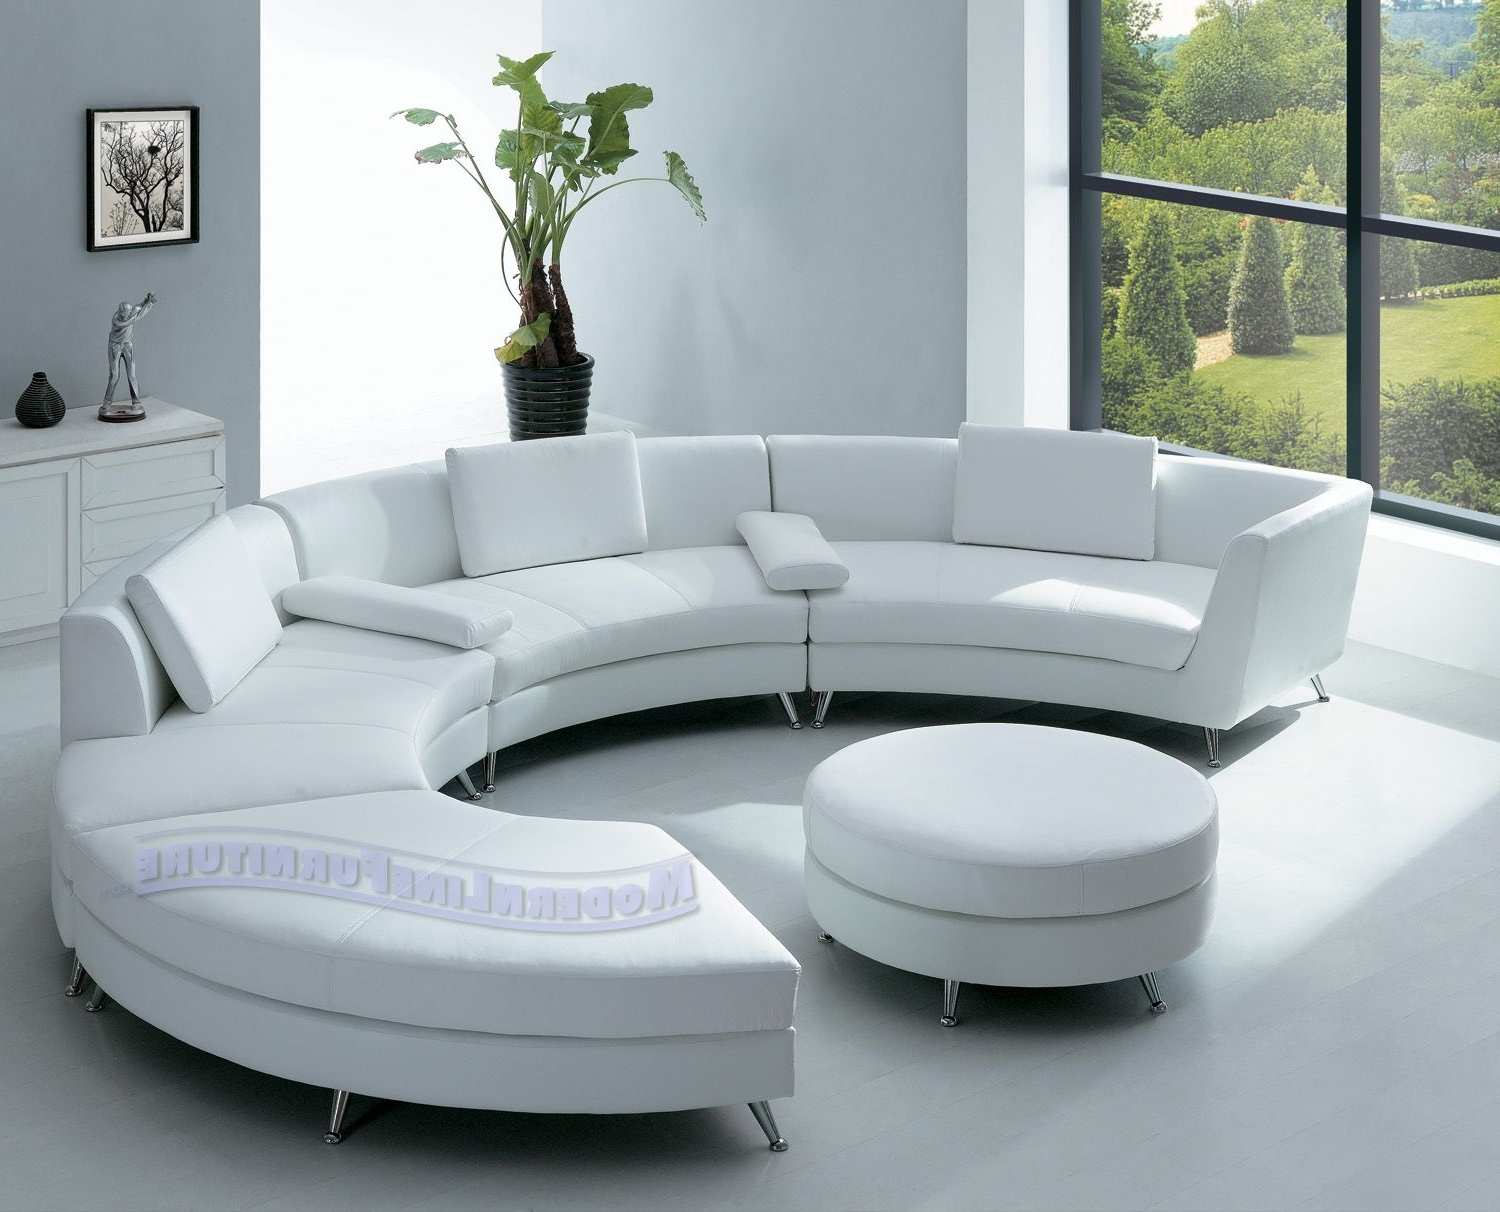 Best And Newest Contemporary Sofa Chairs For Room Furniture With Elegant Half Circle Sofa Home Interior Designs (View 2 of 15)